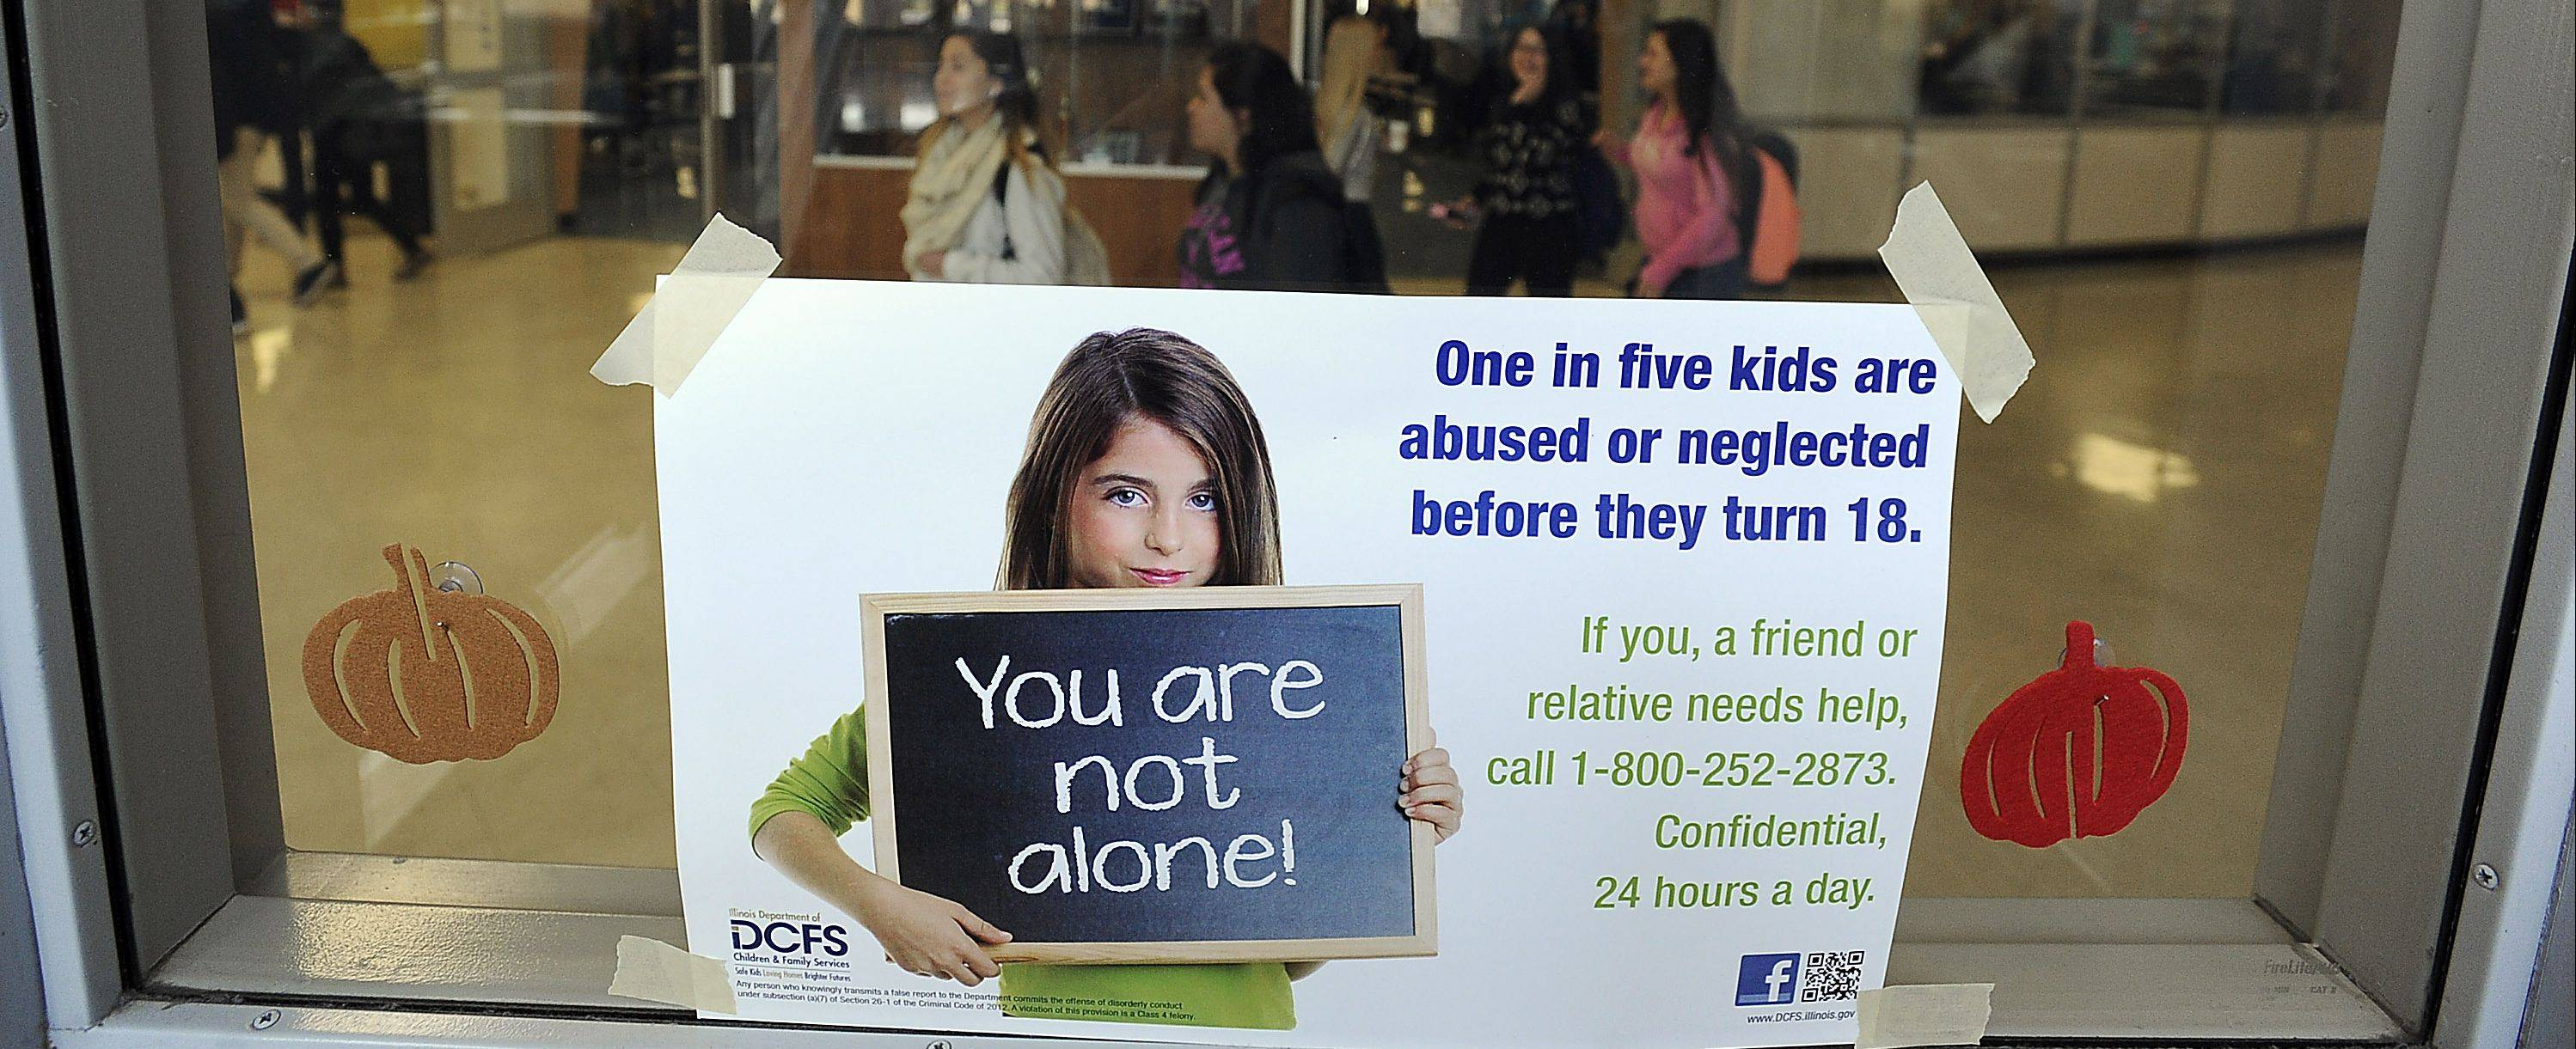 "The Illinois Department of Children and Family Services has launched a new statewide ""You are not alone"" campaign to stop child abuse and neglect. This poster is being displayed in the hallways of Maine West High School in Des Plaines."